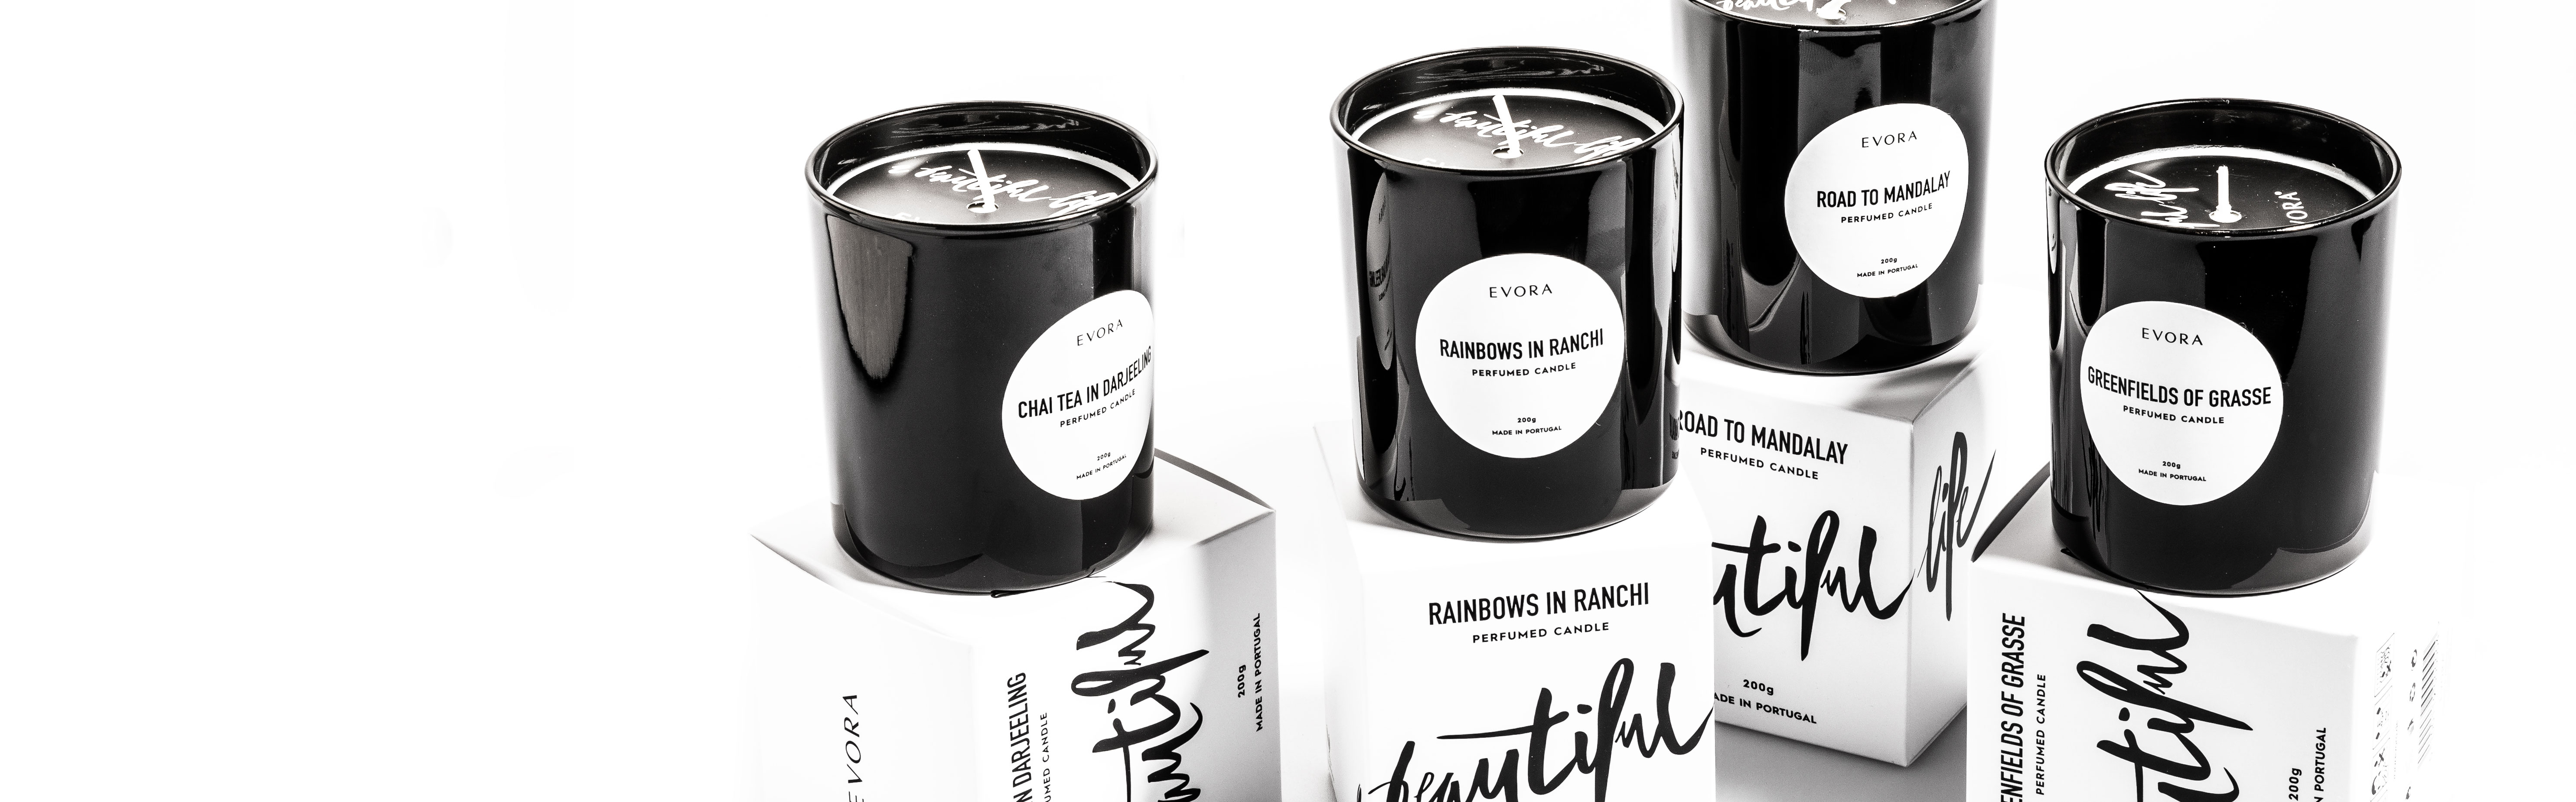 EVORA